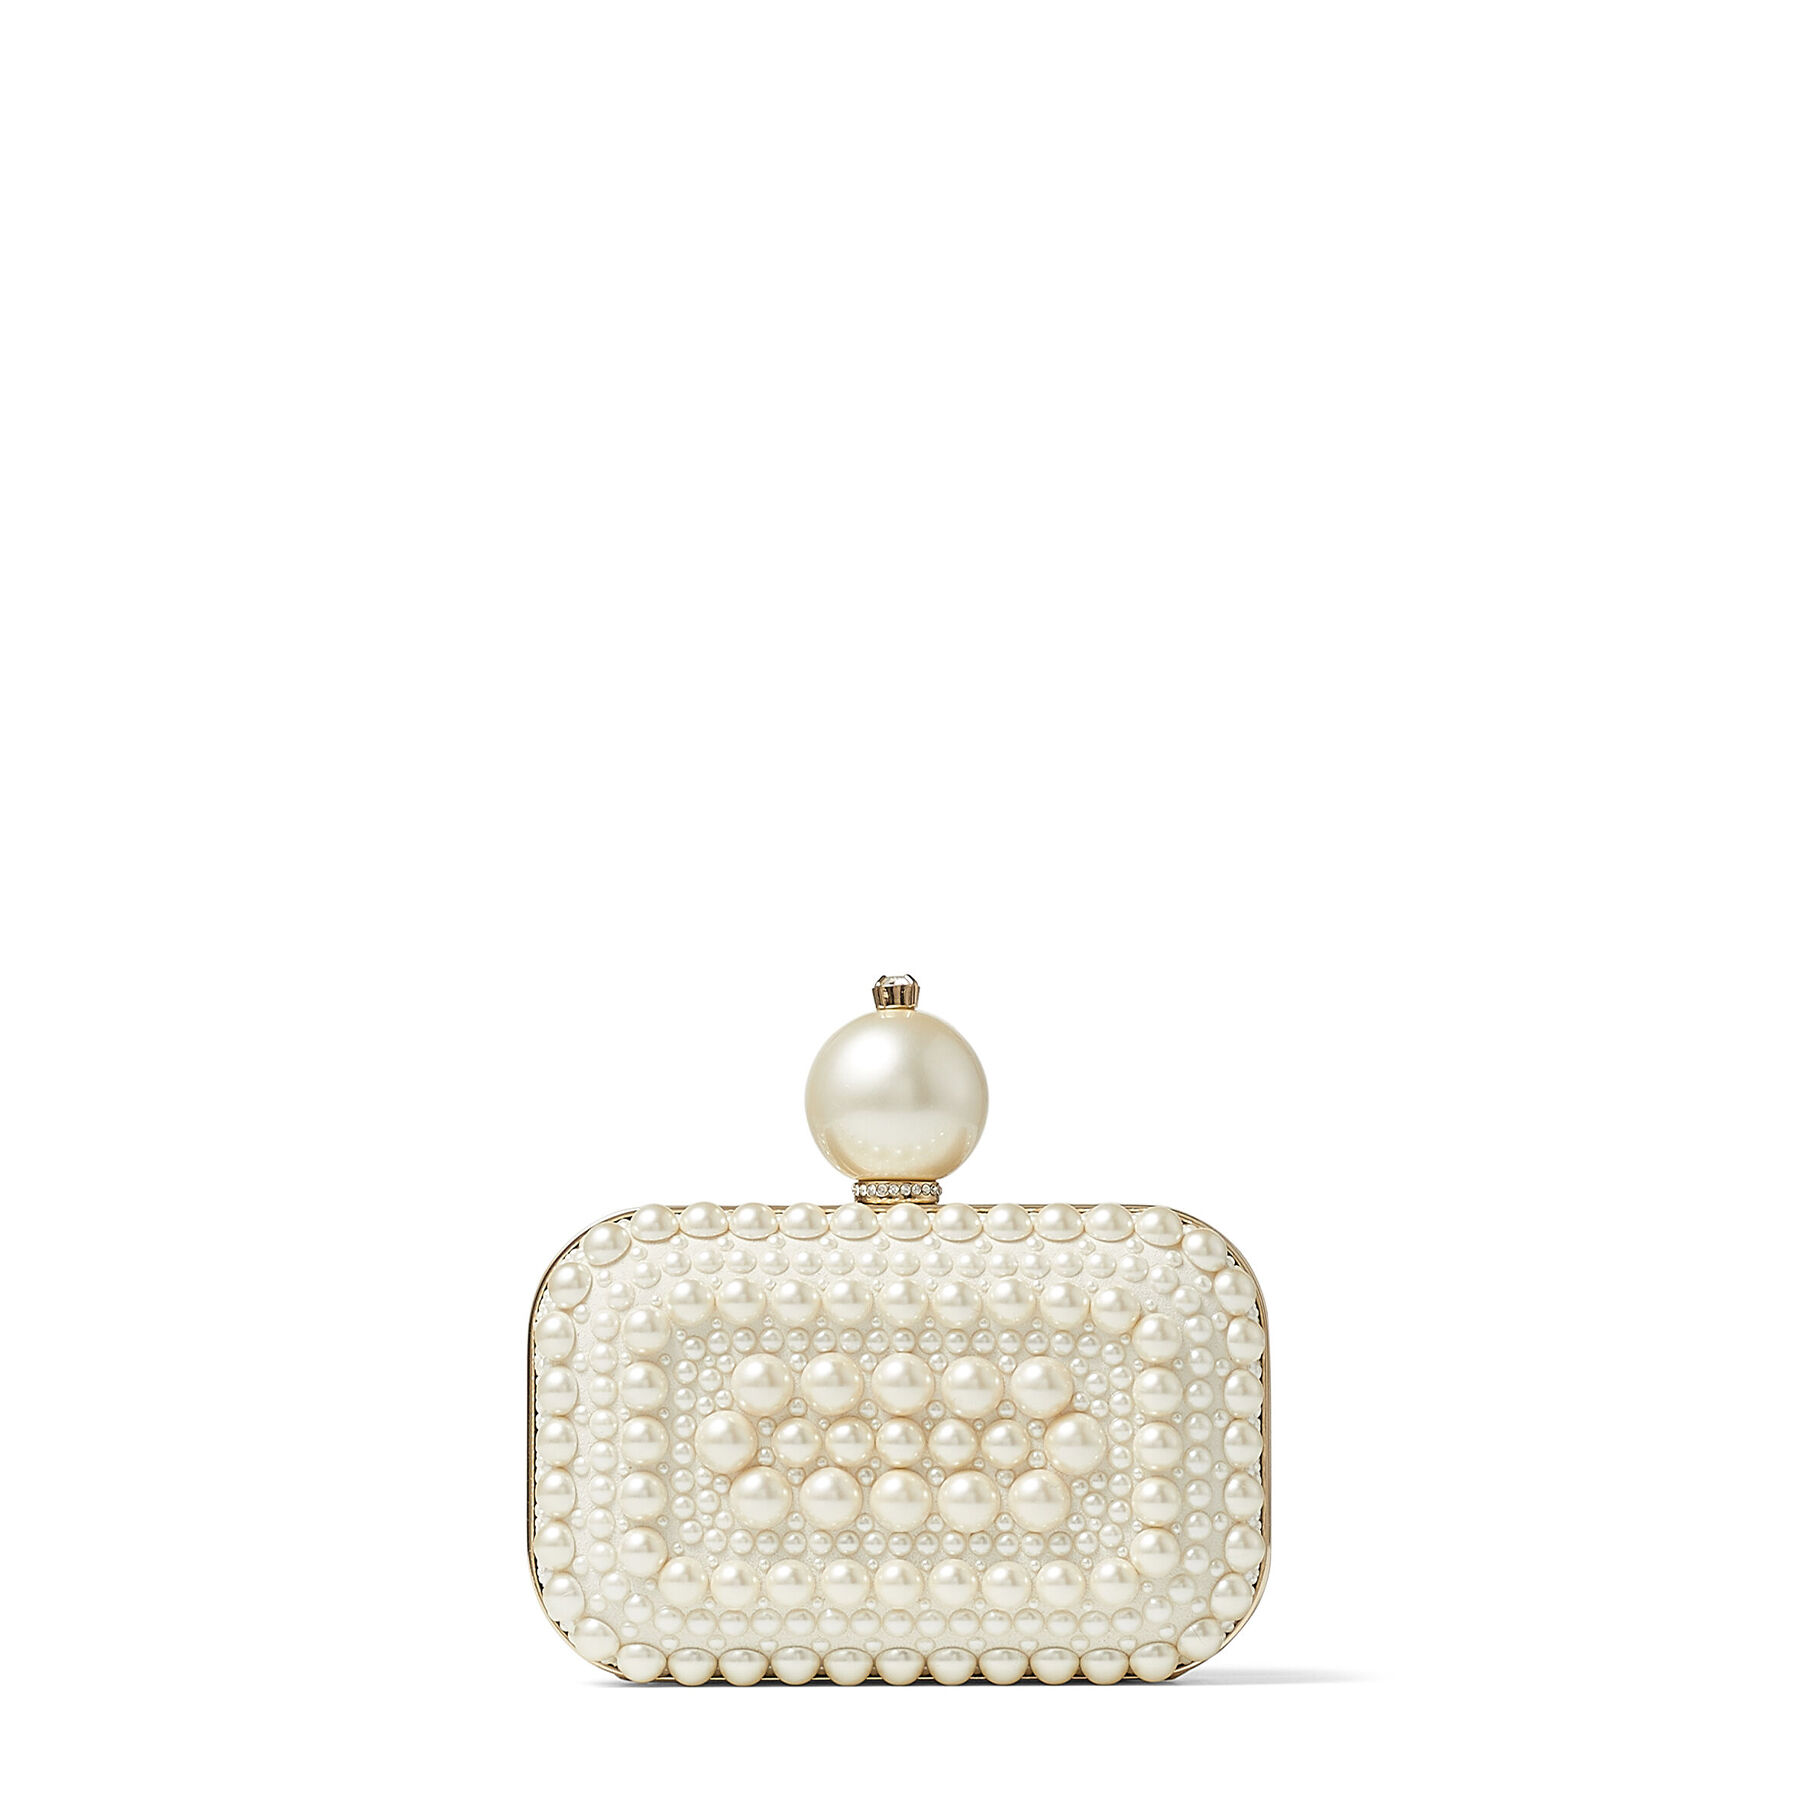 MICRO CLOUD - White Suede Clutch Bag with All-Over Pearl Embellishment